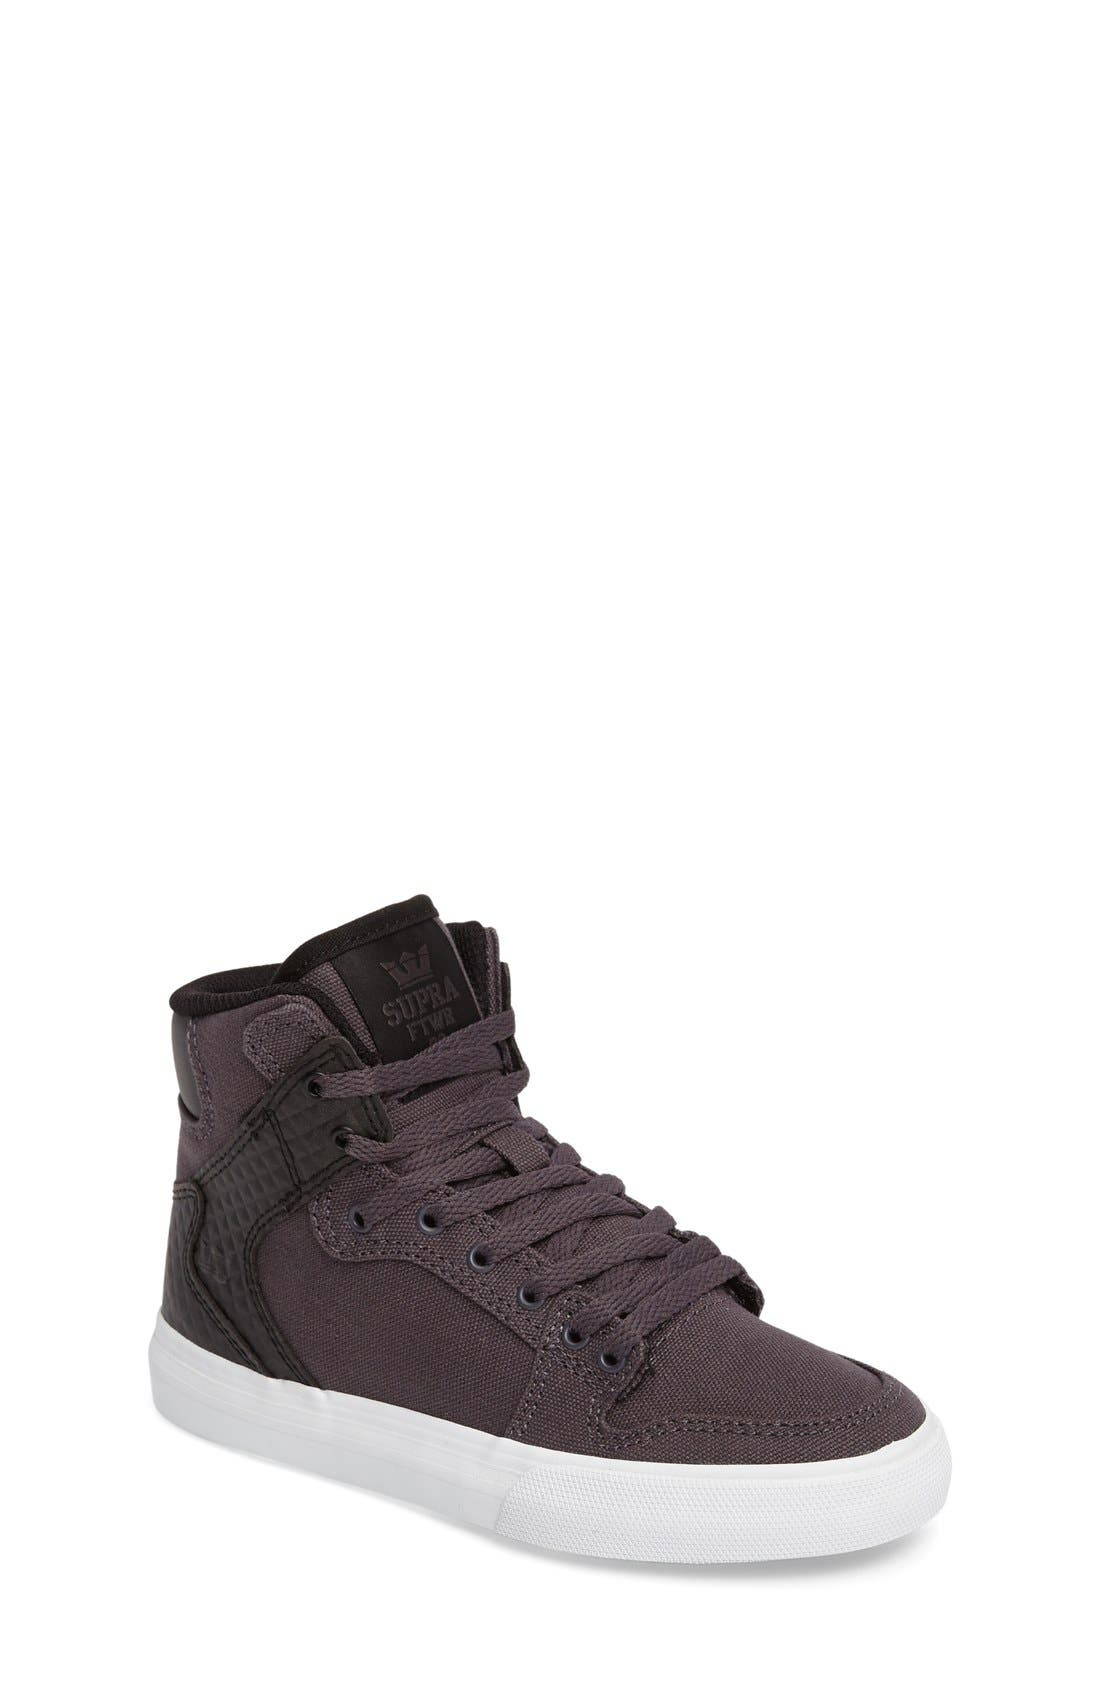 Vaider High Top Sneaker,                         Main,                         color, 006